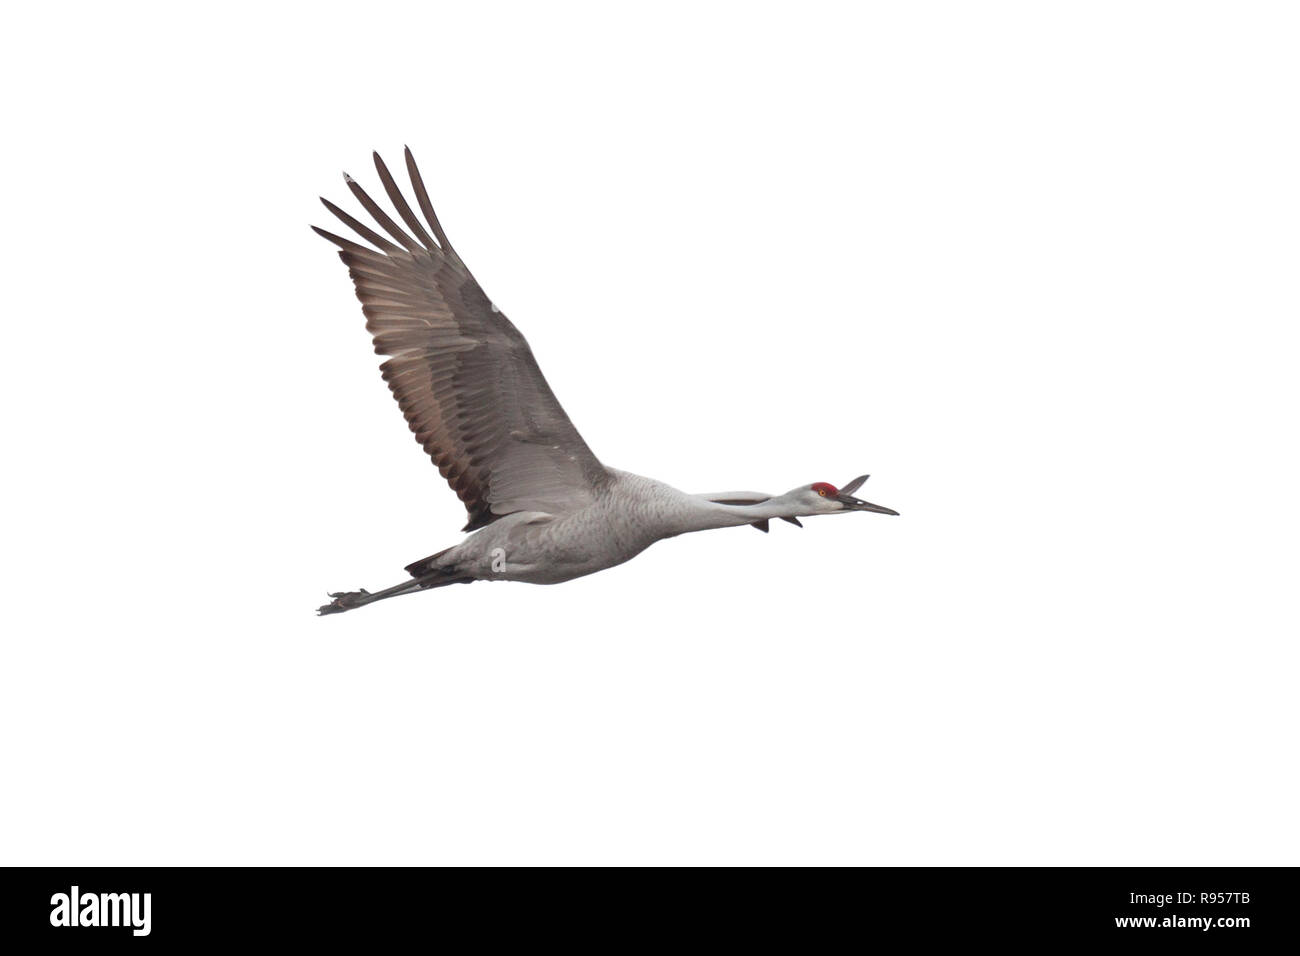 A Sandhill crane soars across a white background with its wings wide open. - Stock Image